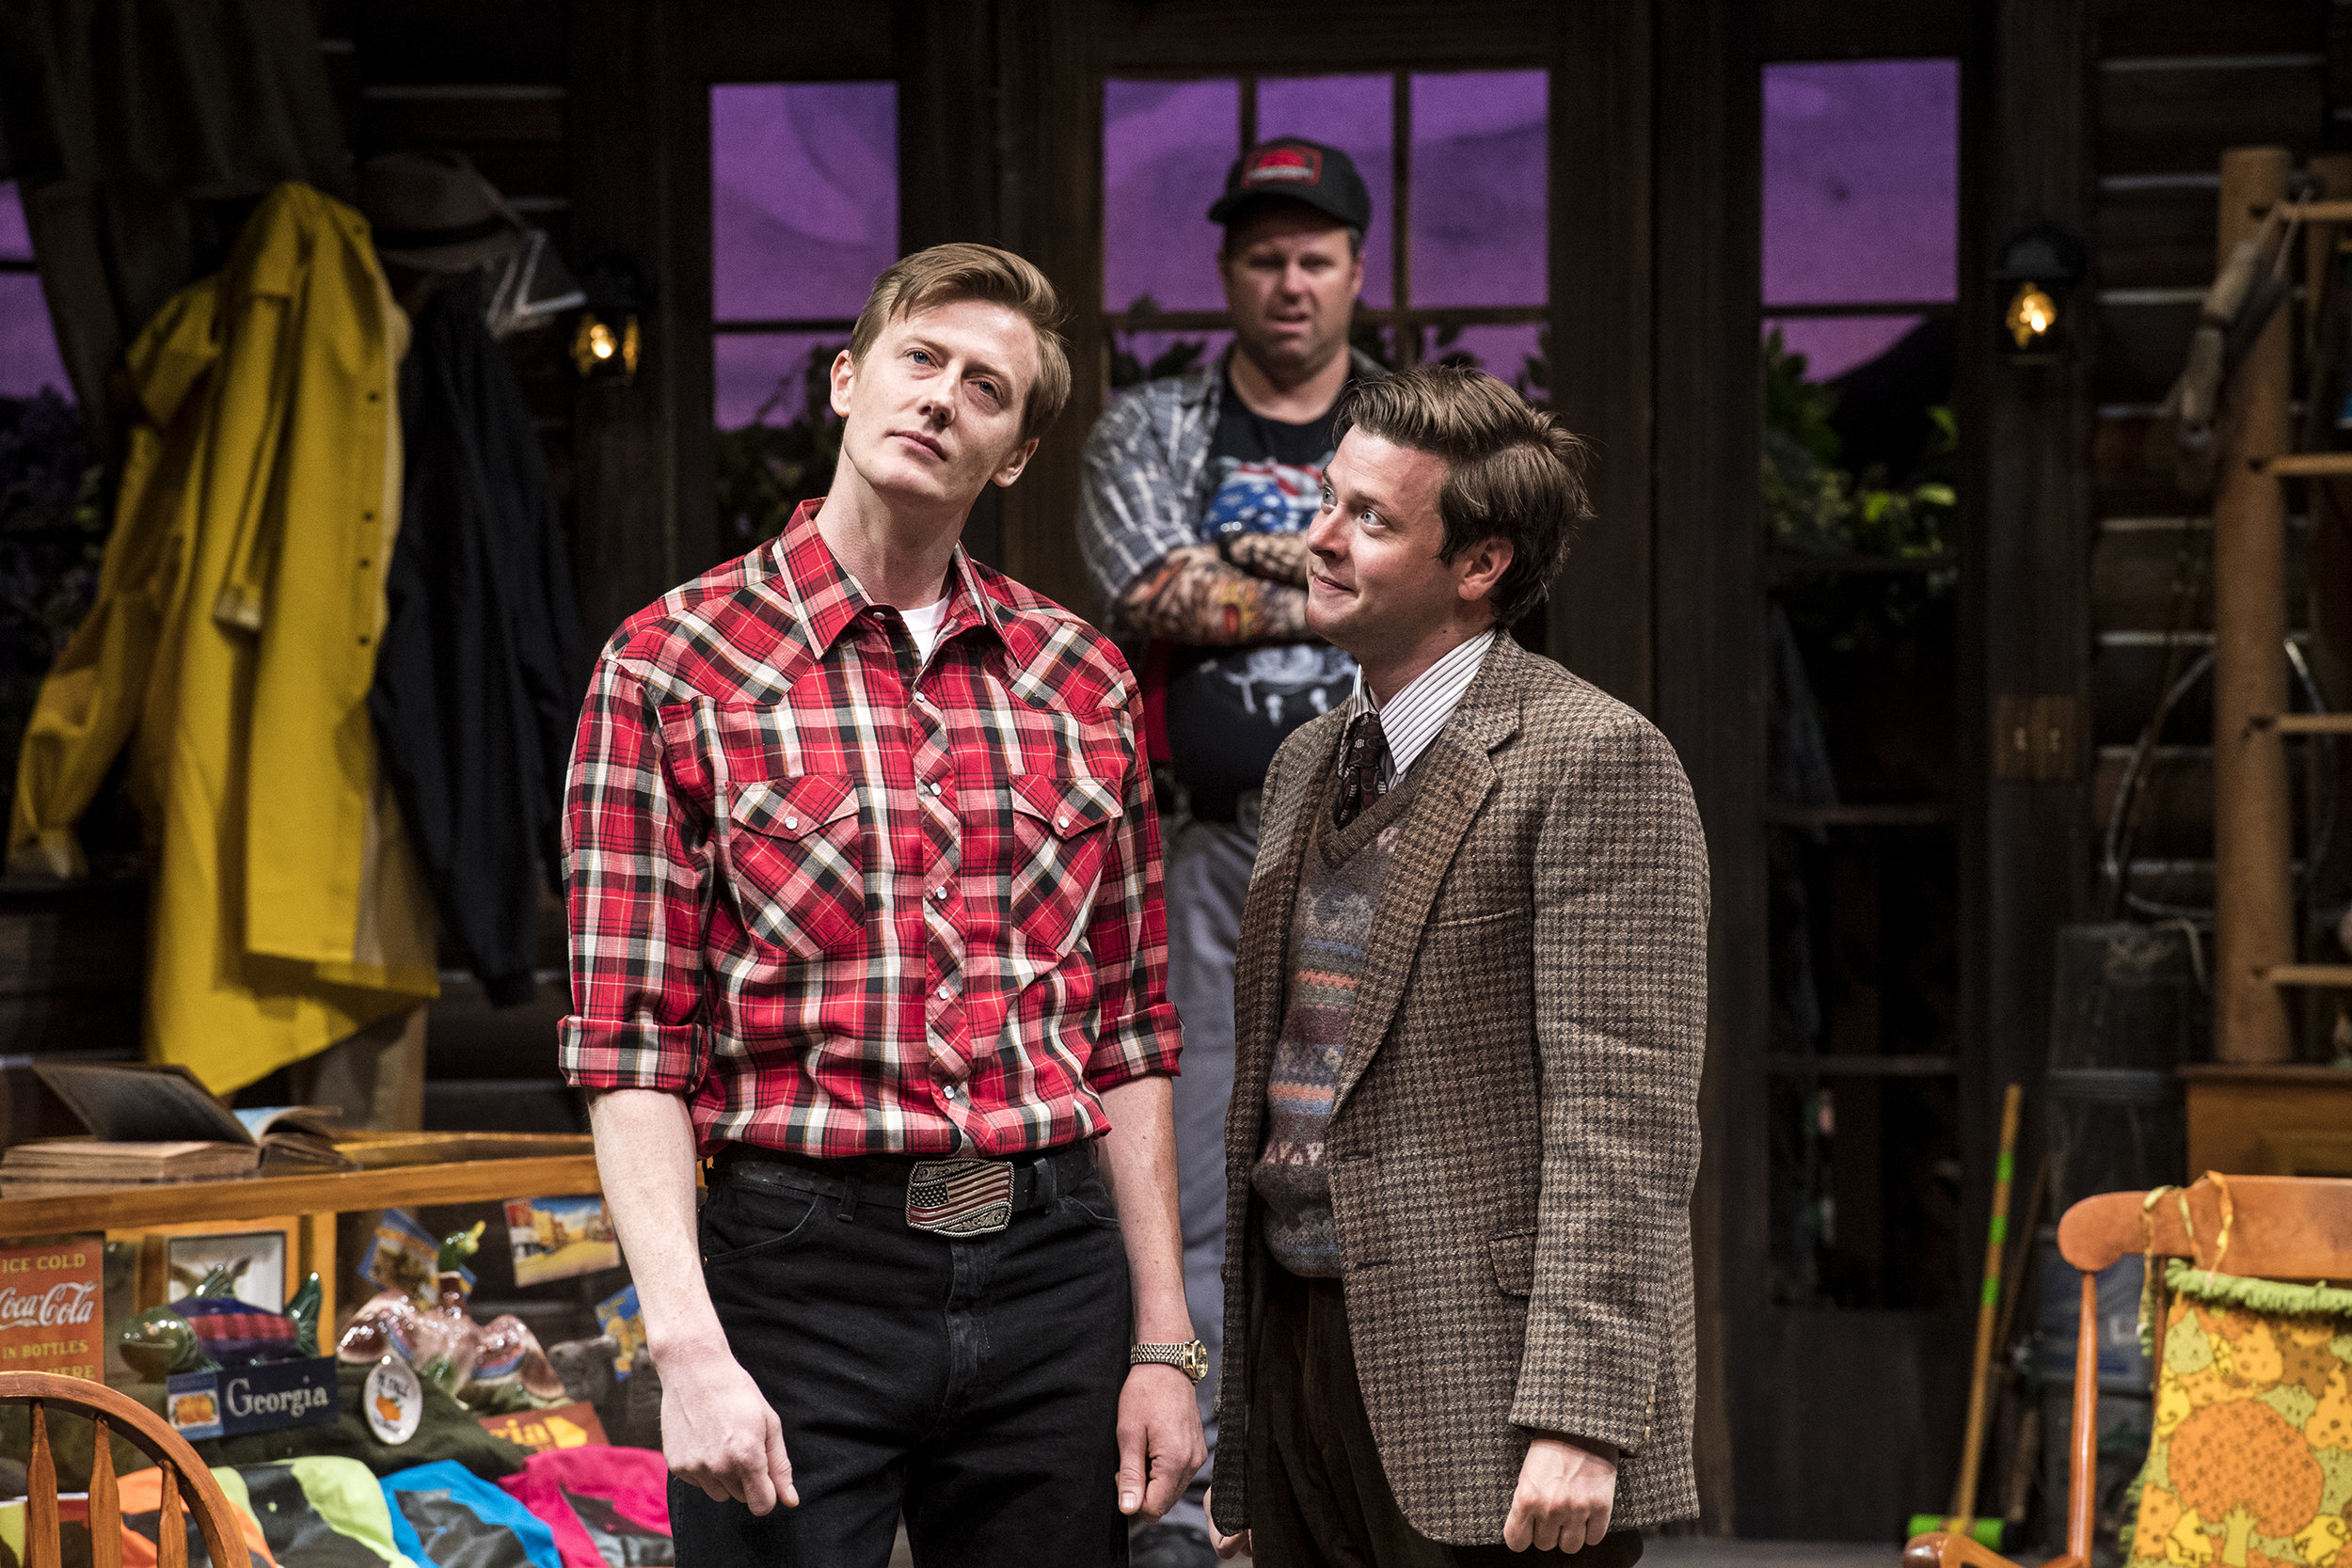 Josh Jeffers (left) as Rev. David Marshall Lee, Russ Benton as Owen  Musser, and Michael Doherty as Charlie Baker in the Utah Shakespeare  Festival's 2018 production of  The Foreigner.  (Photo by Karl Hugh. Copyright Utah Shakespeare Festival 2018.)